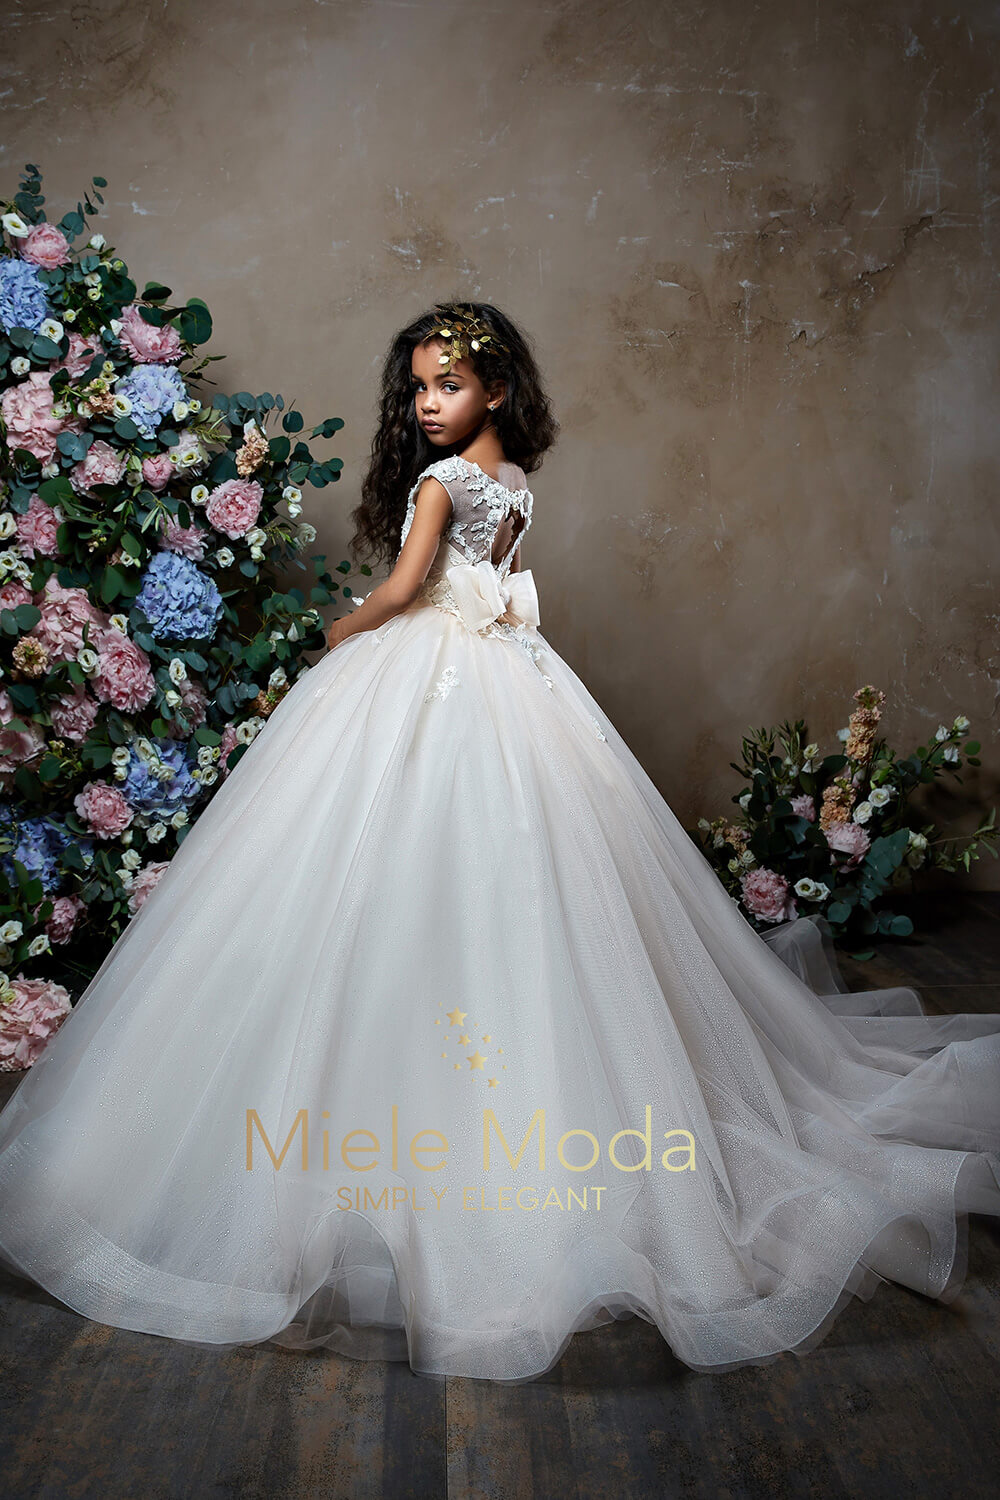 Pretty girl wearing Abigail Flower Girl Dress Pageant Dress-by Miele Moda Boutique